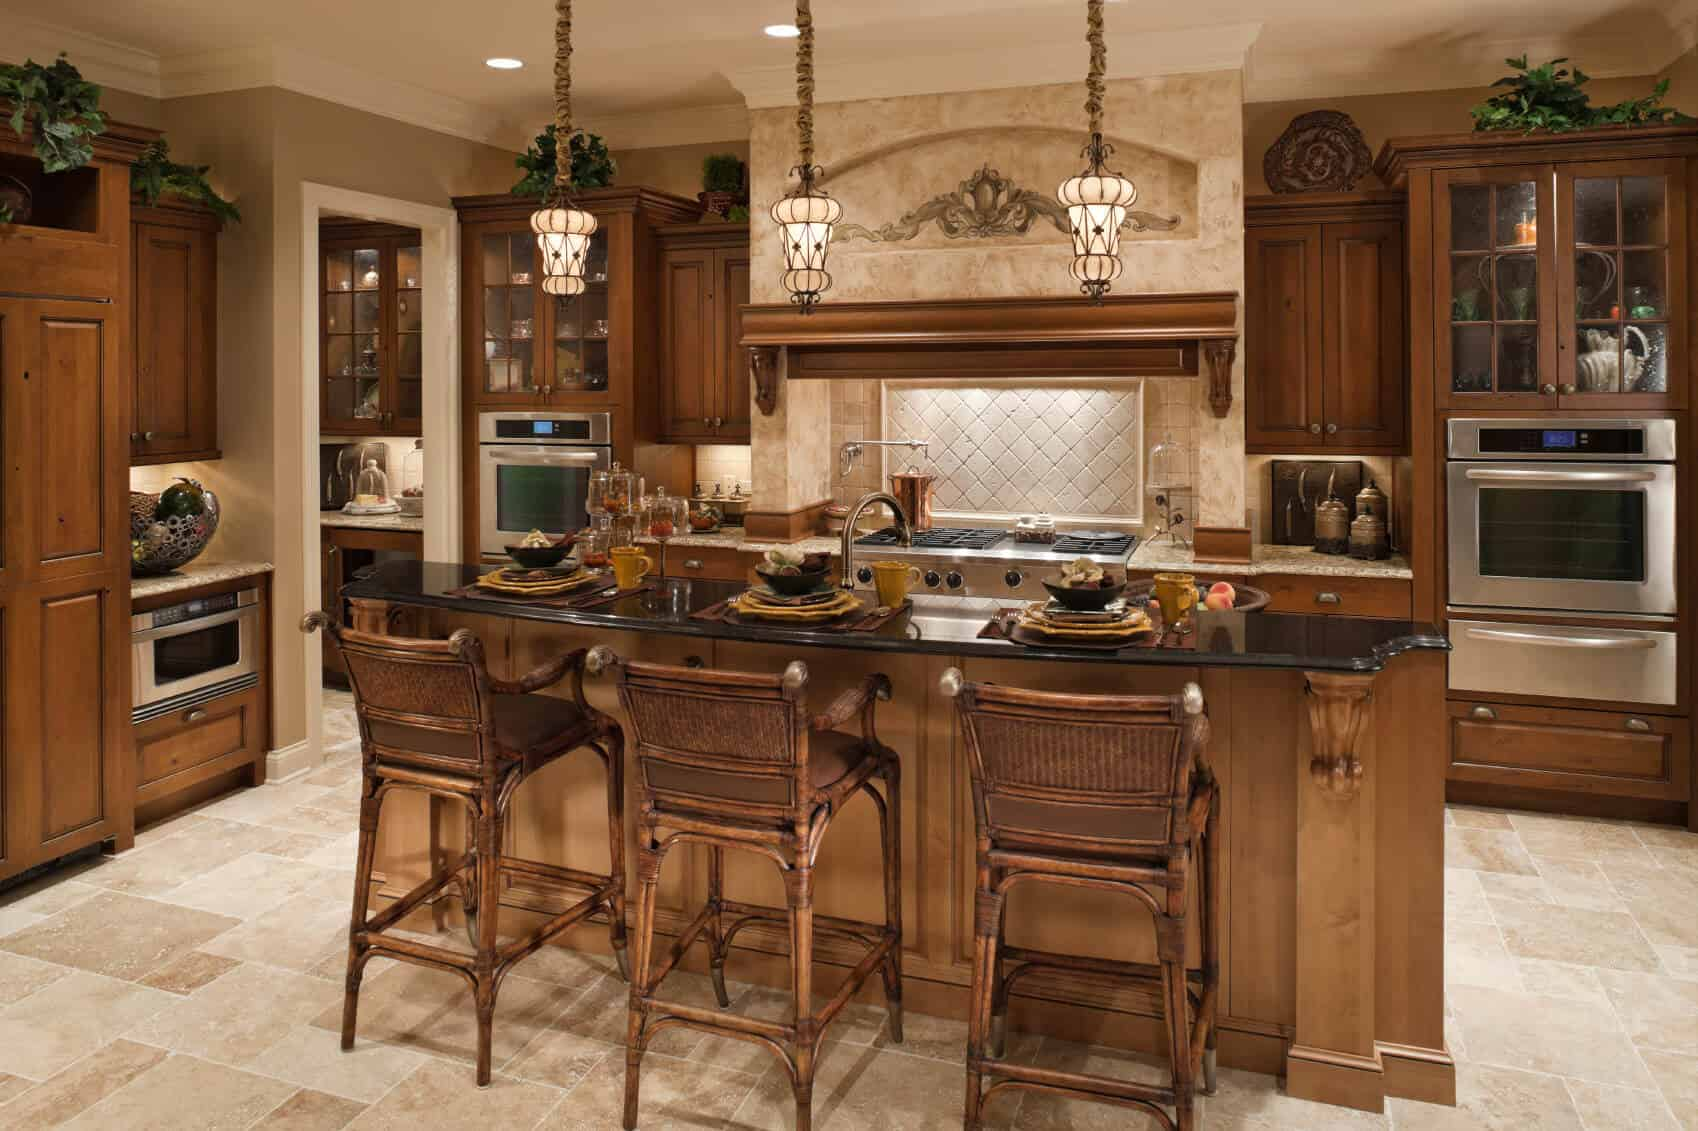 A kitchen with wood tone cabinetry and kitchen counters, along with a center island with a separate breakfast bar counter, lighted by charming pendant lights.